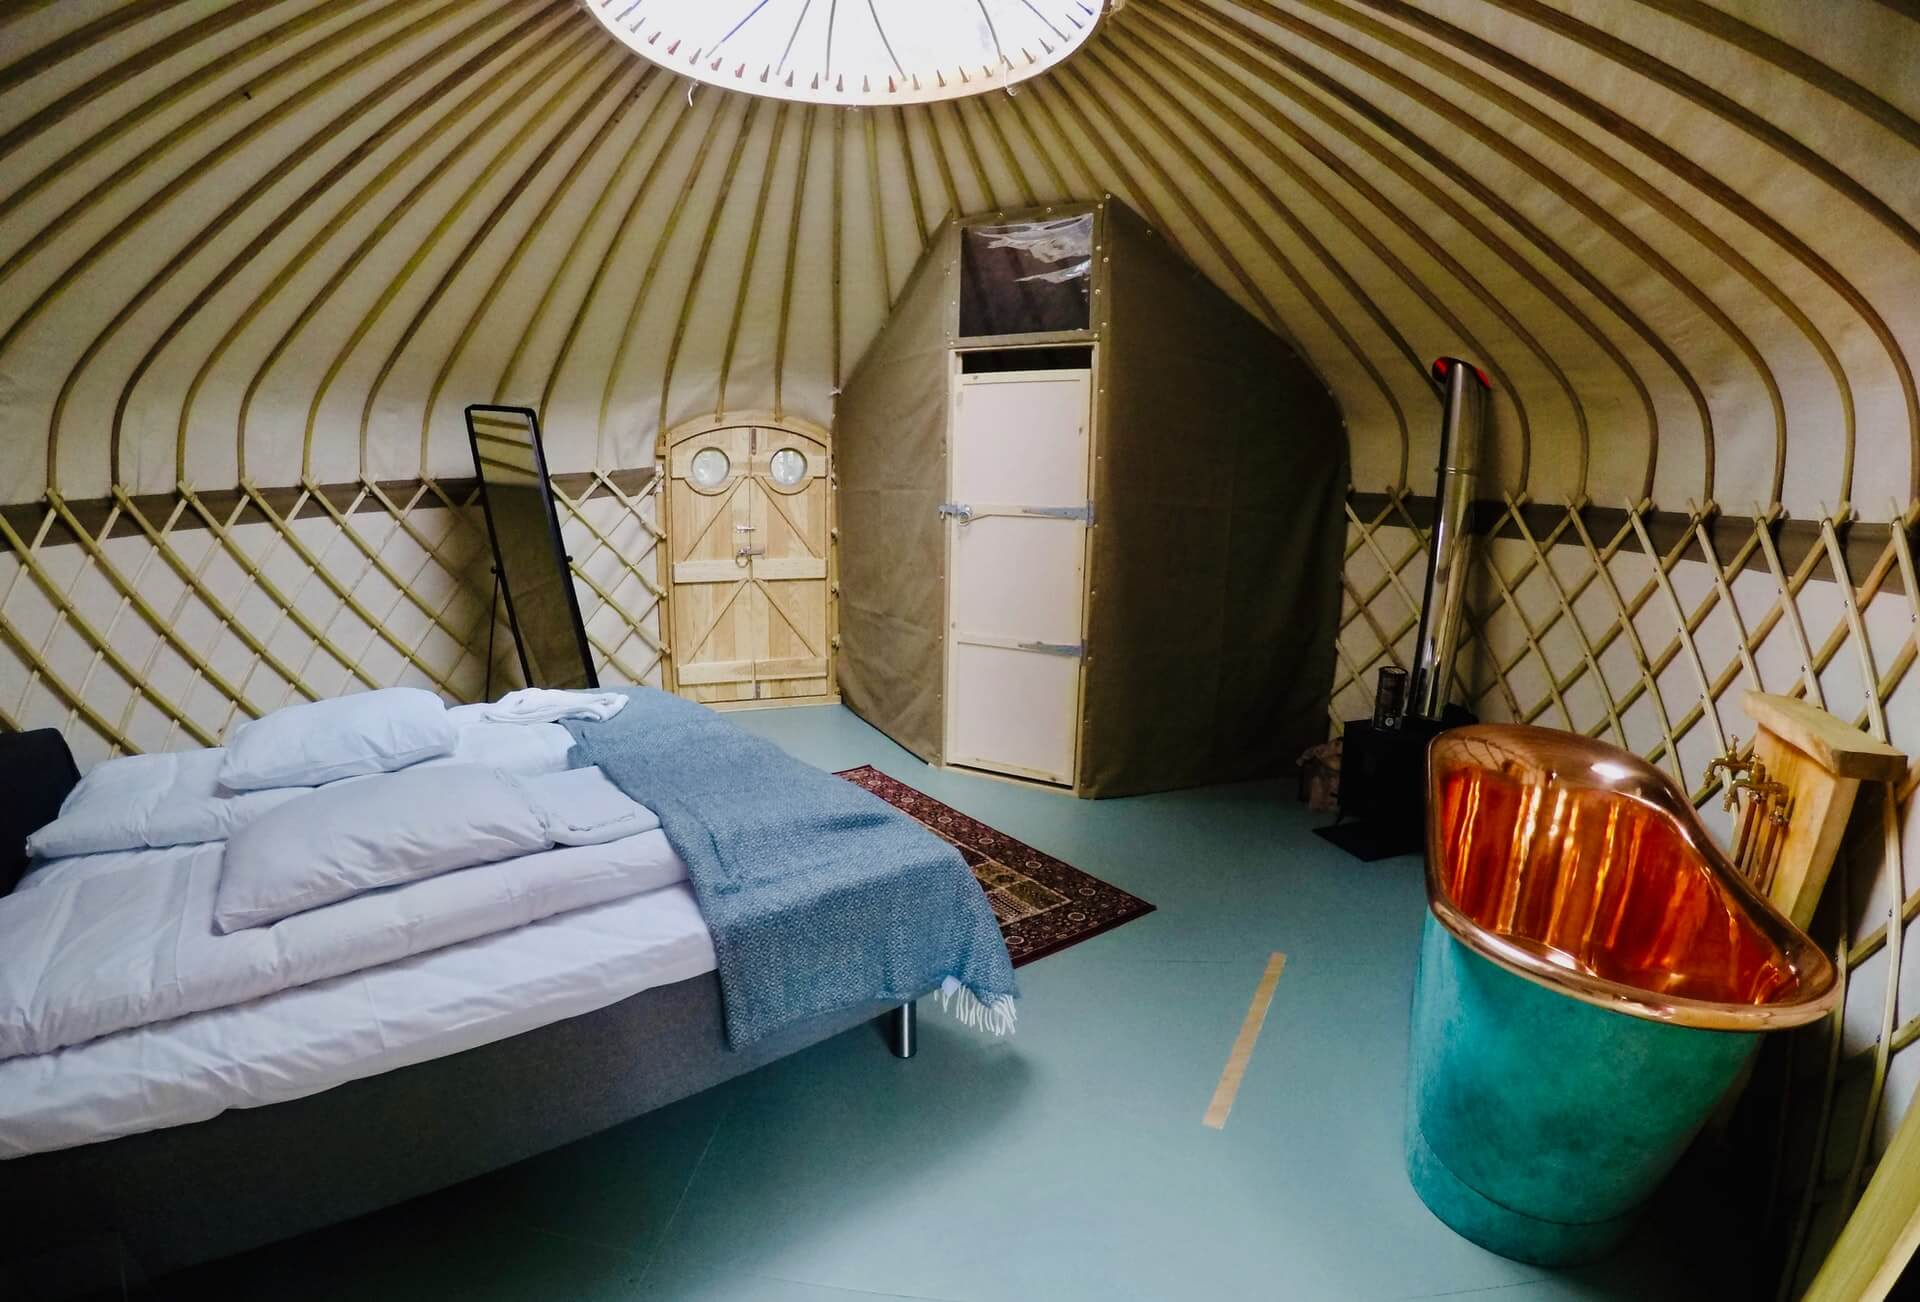 Carefully Choose Your glamping Accommodation